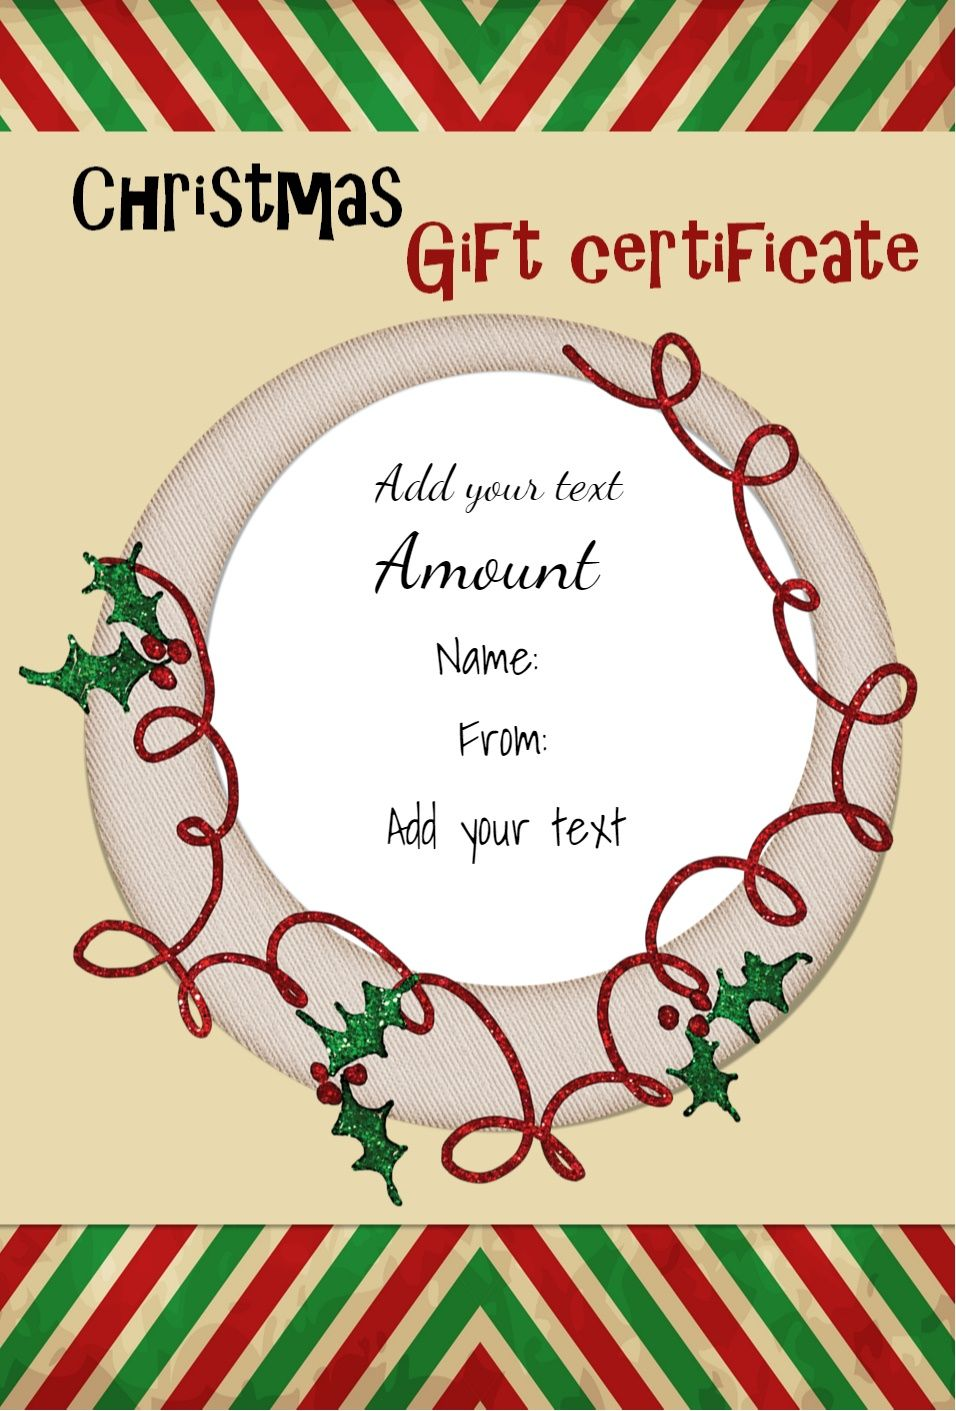 Gift certificate template beautiful printable gift certificate gift certificate template beautiful printable gift certificate templates pinterest gift certificate template gift certificates and certificate alramifo Gallery